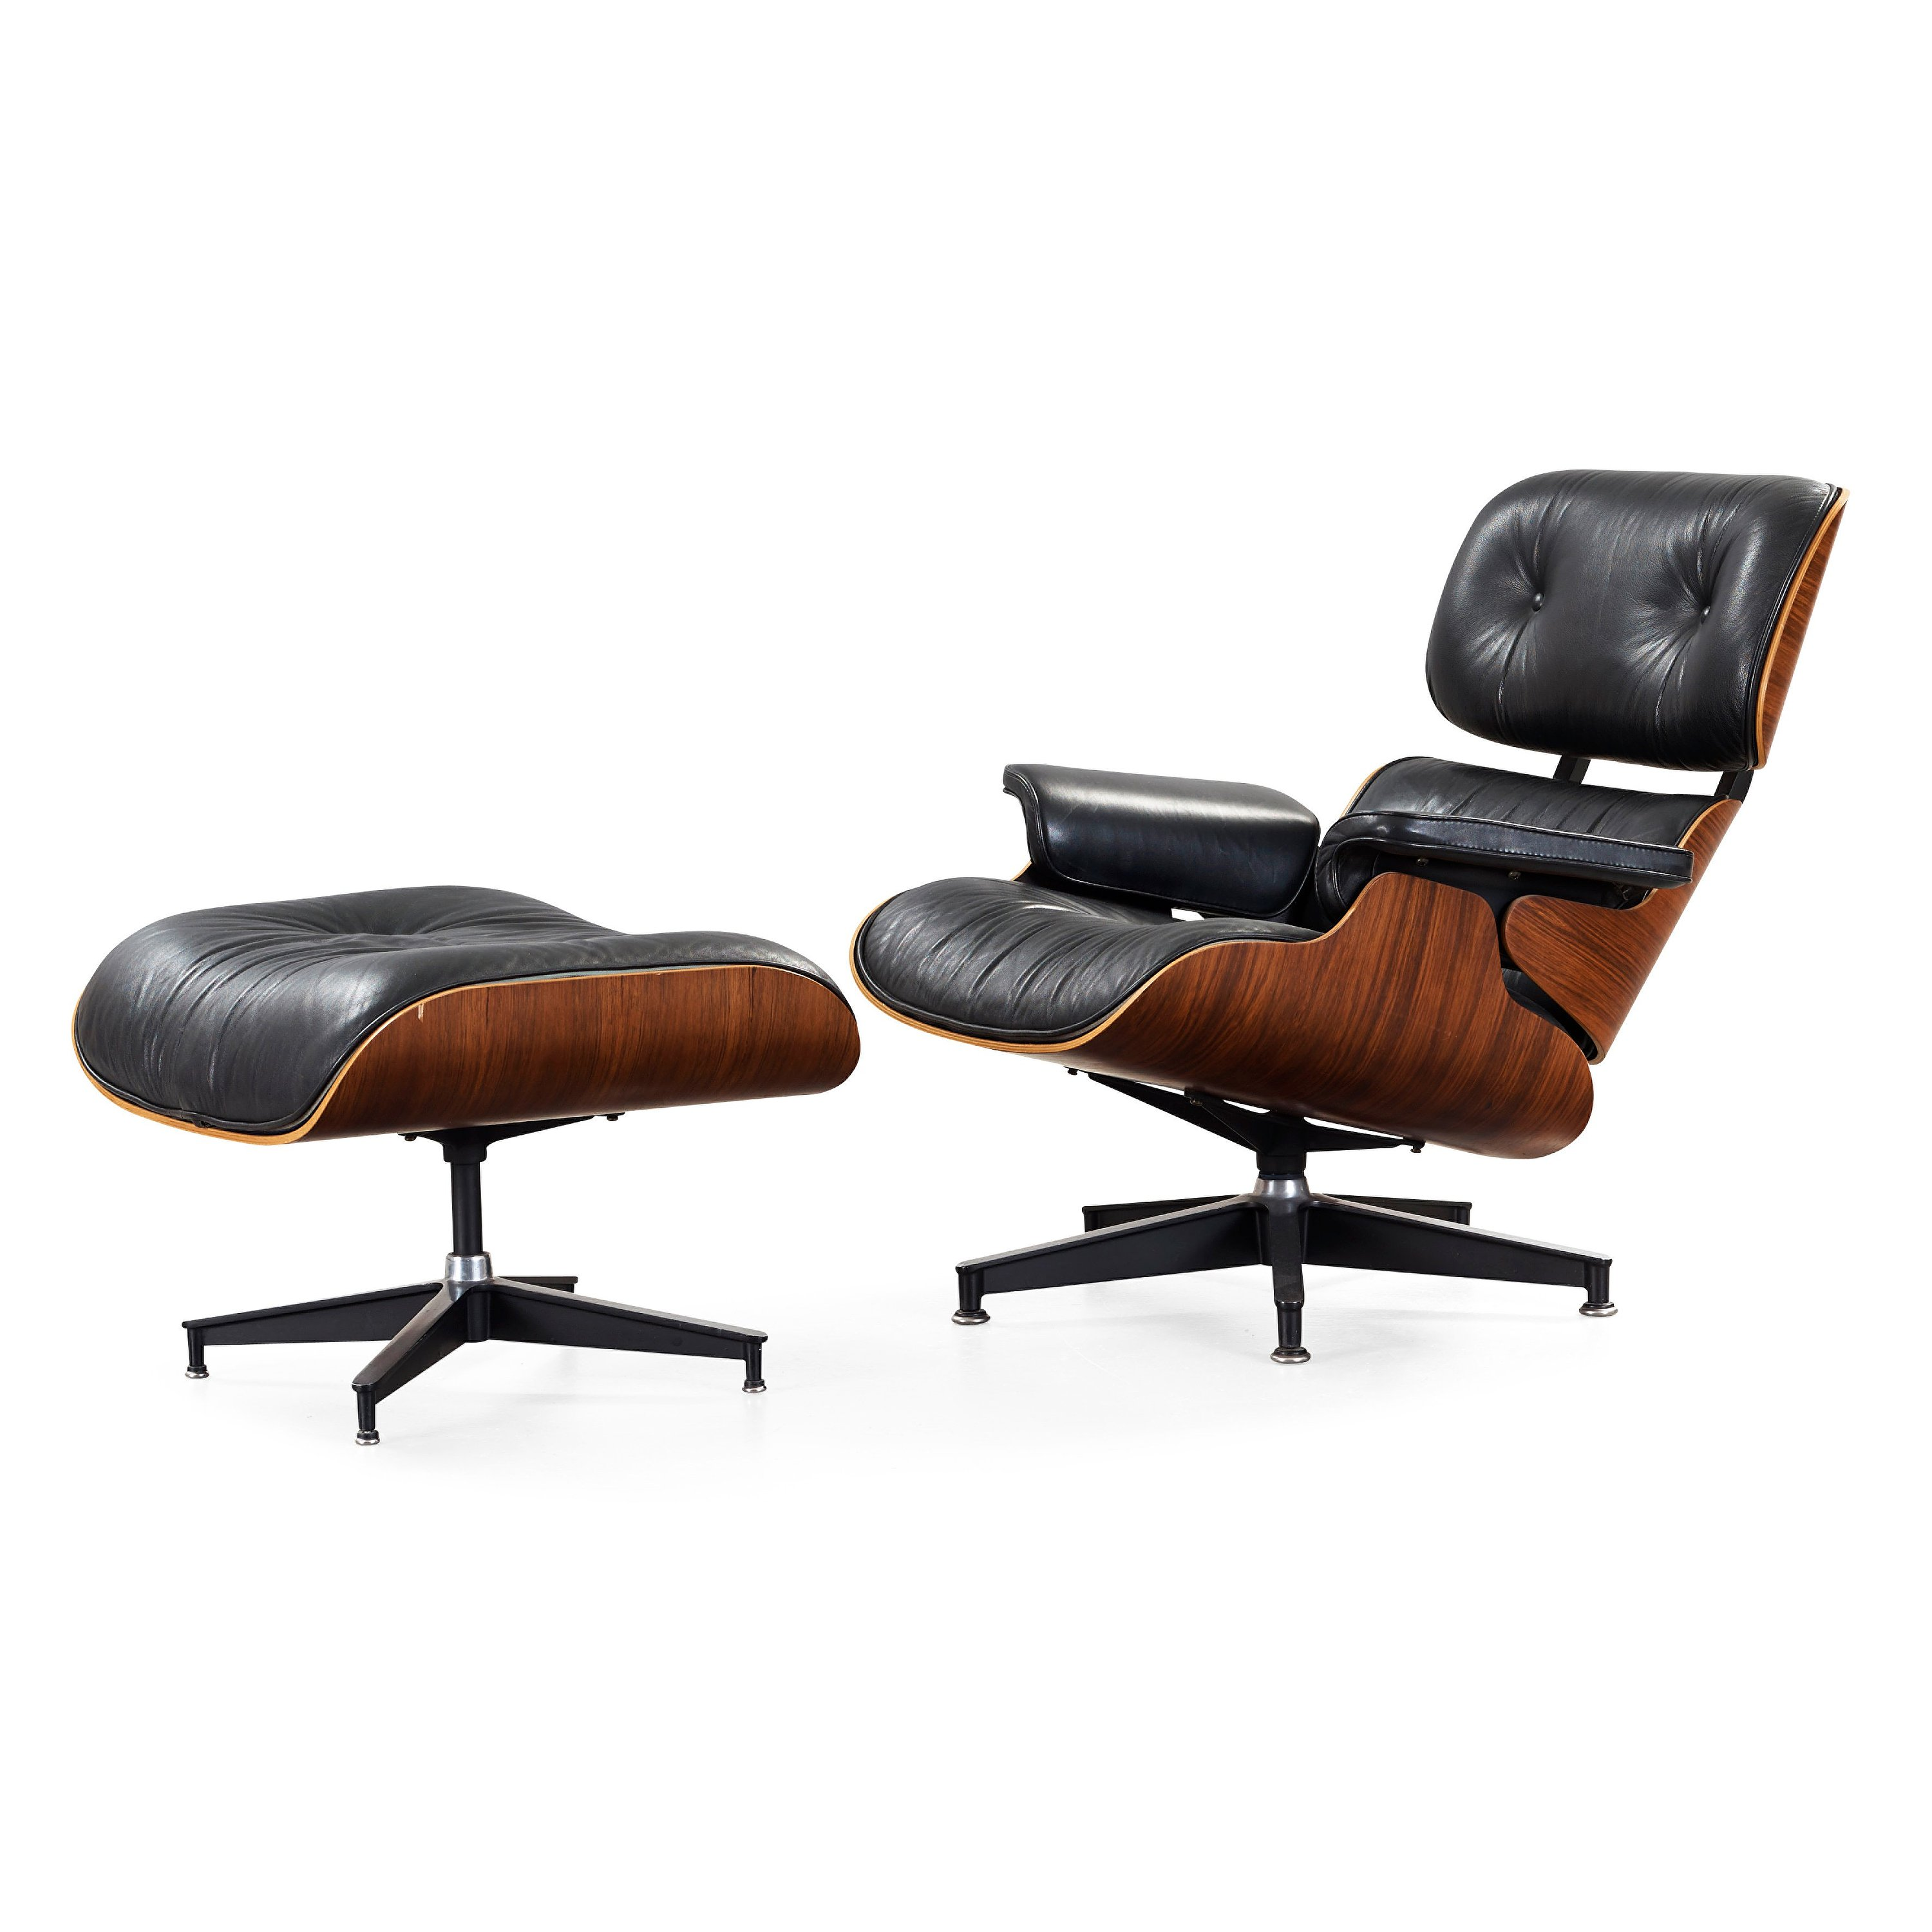 Magnificent Charles Ray Eames Lounge Chair With Ottoman Herman Machost Co Dining Chair Design Ideas Machostcouk